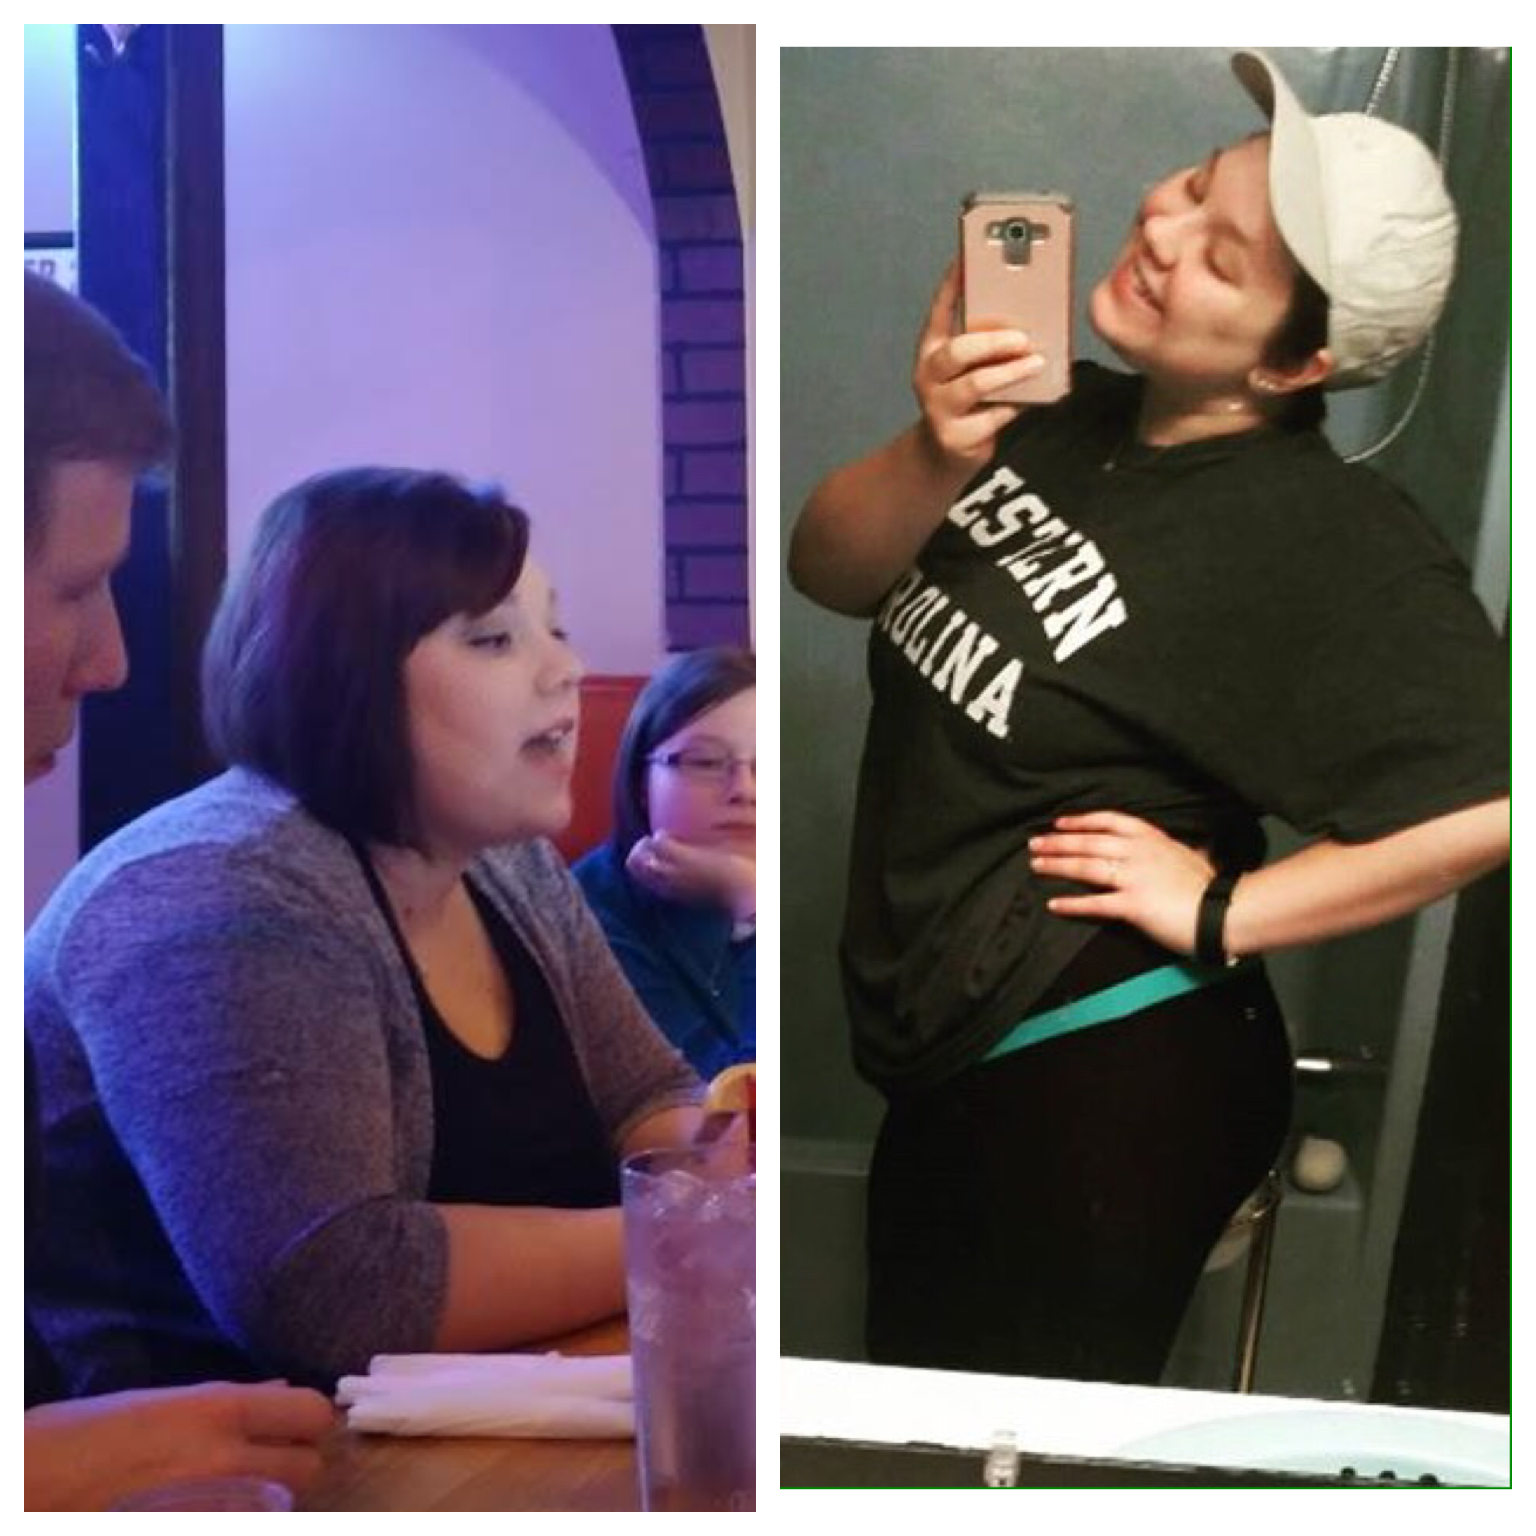 Great success story! Read before and after fitness transformation stories from women and men who hit weight loss goals and got THAT BODY with training and meal prep. Find inspiration, motivation, and workout tips | 28 Pounds Lost: Changing my life one step at a time.